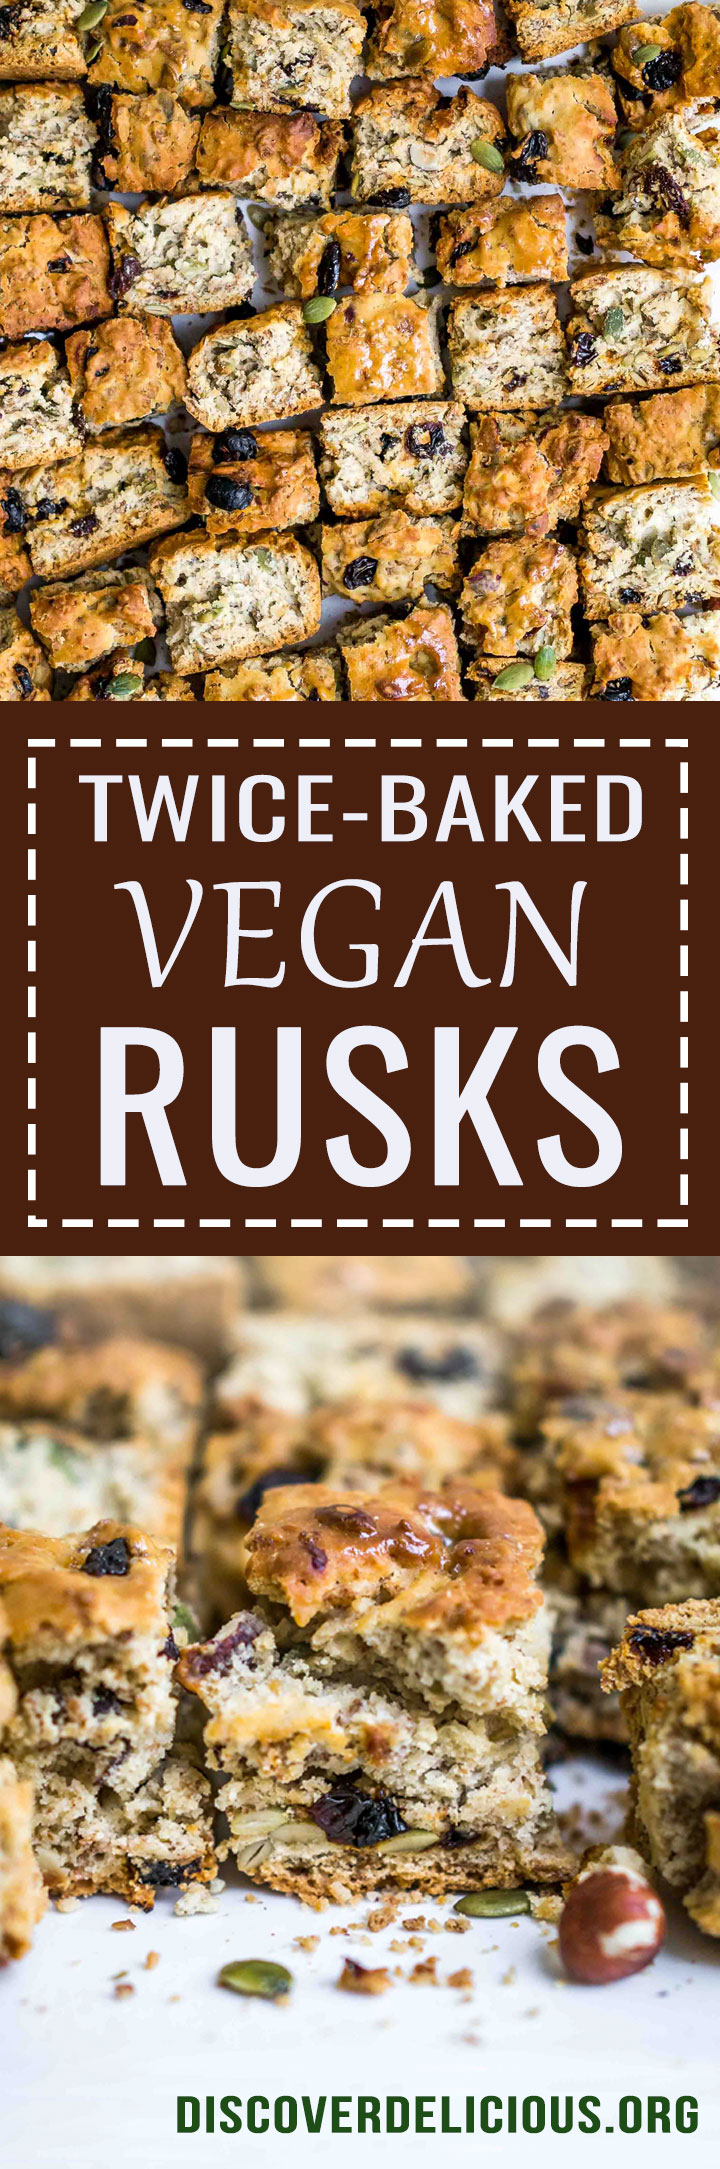 Vegan Rusks   Discover Delicious   www.discoverdelicious.org   Vegan Food Blog